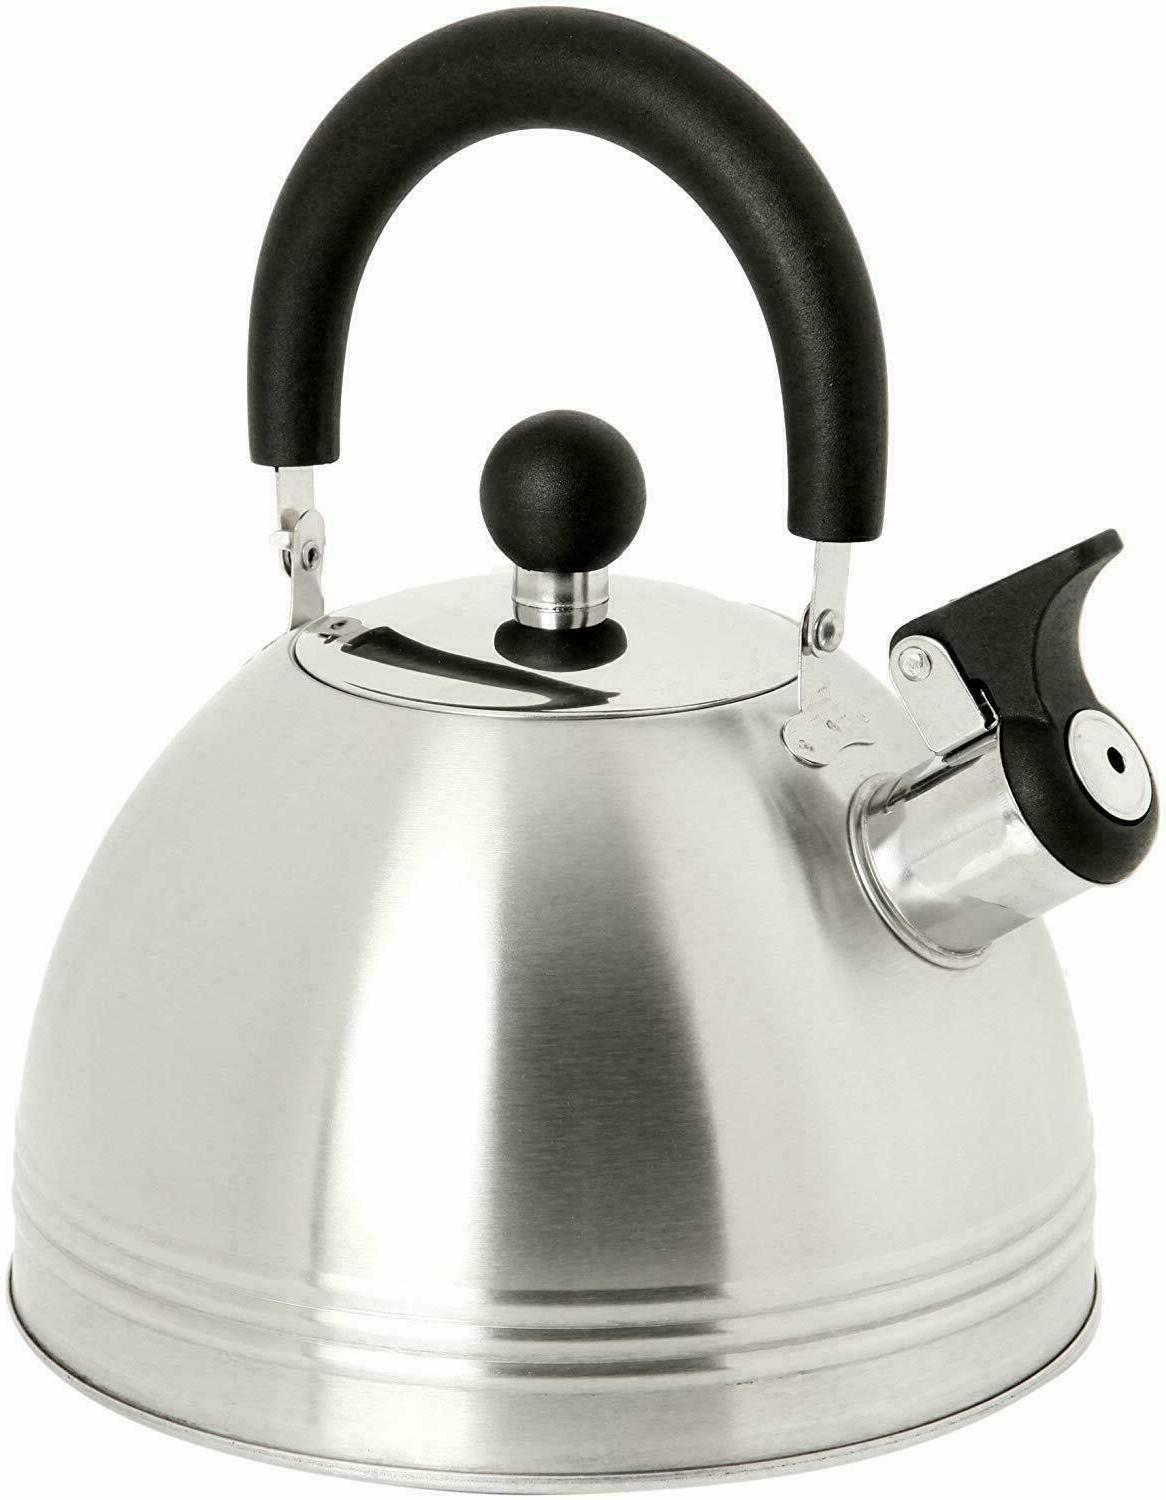 whistling tea kettle coffee tea maker 1